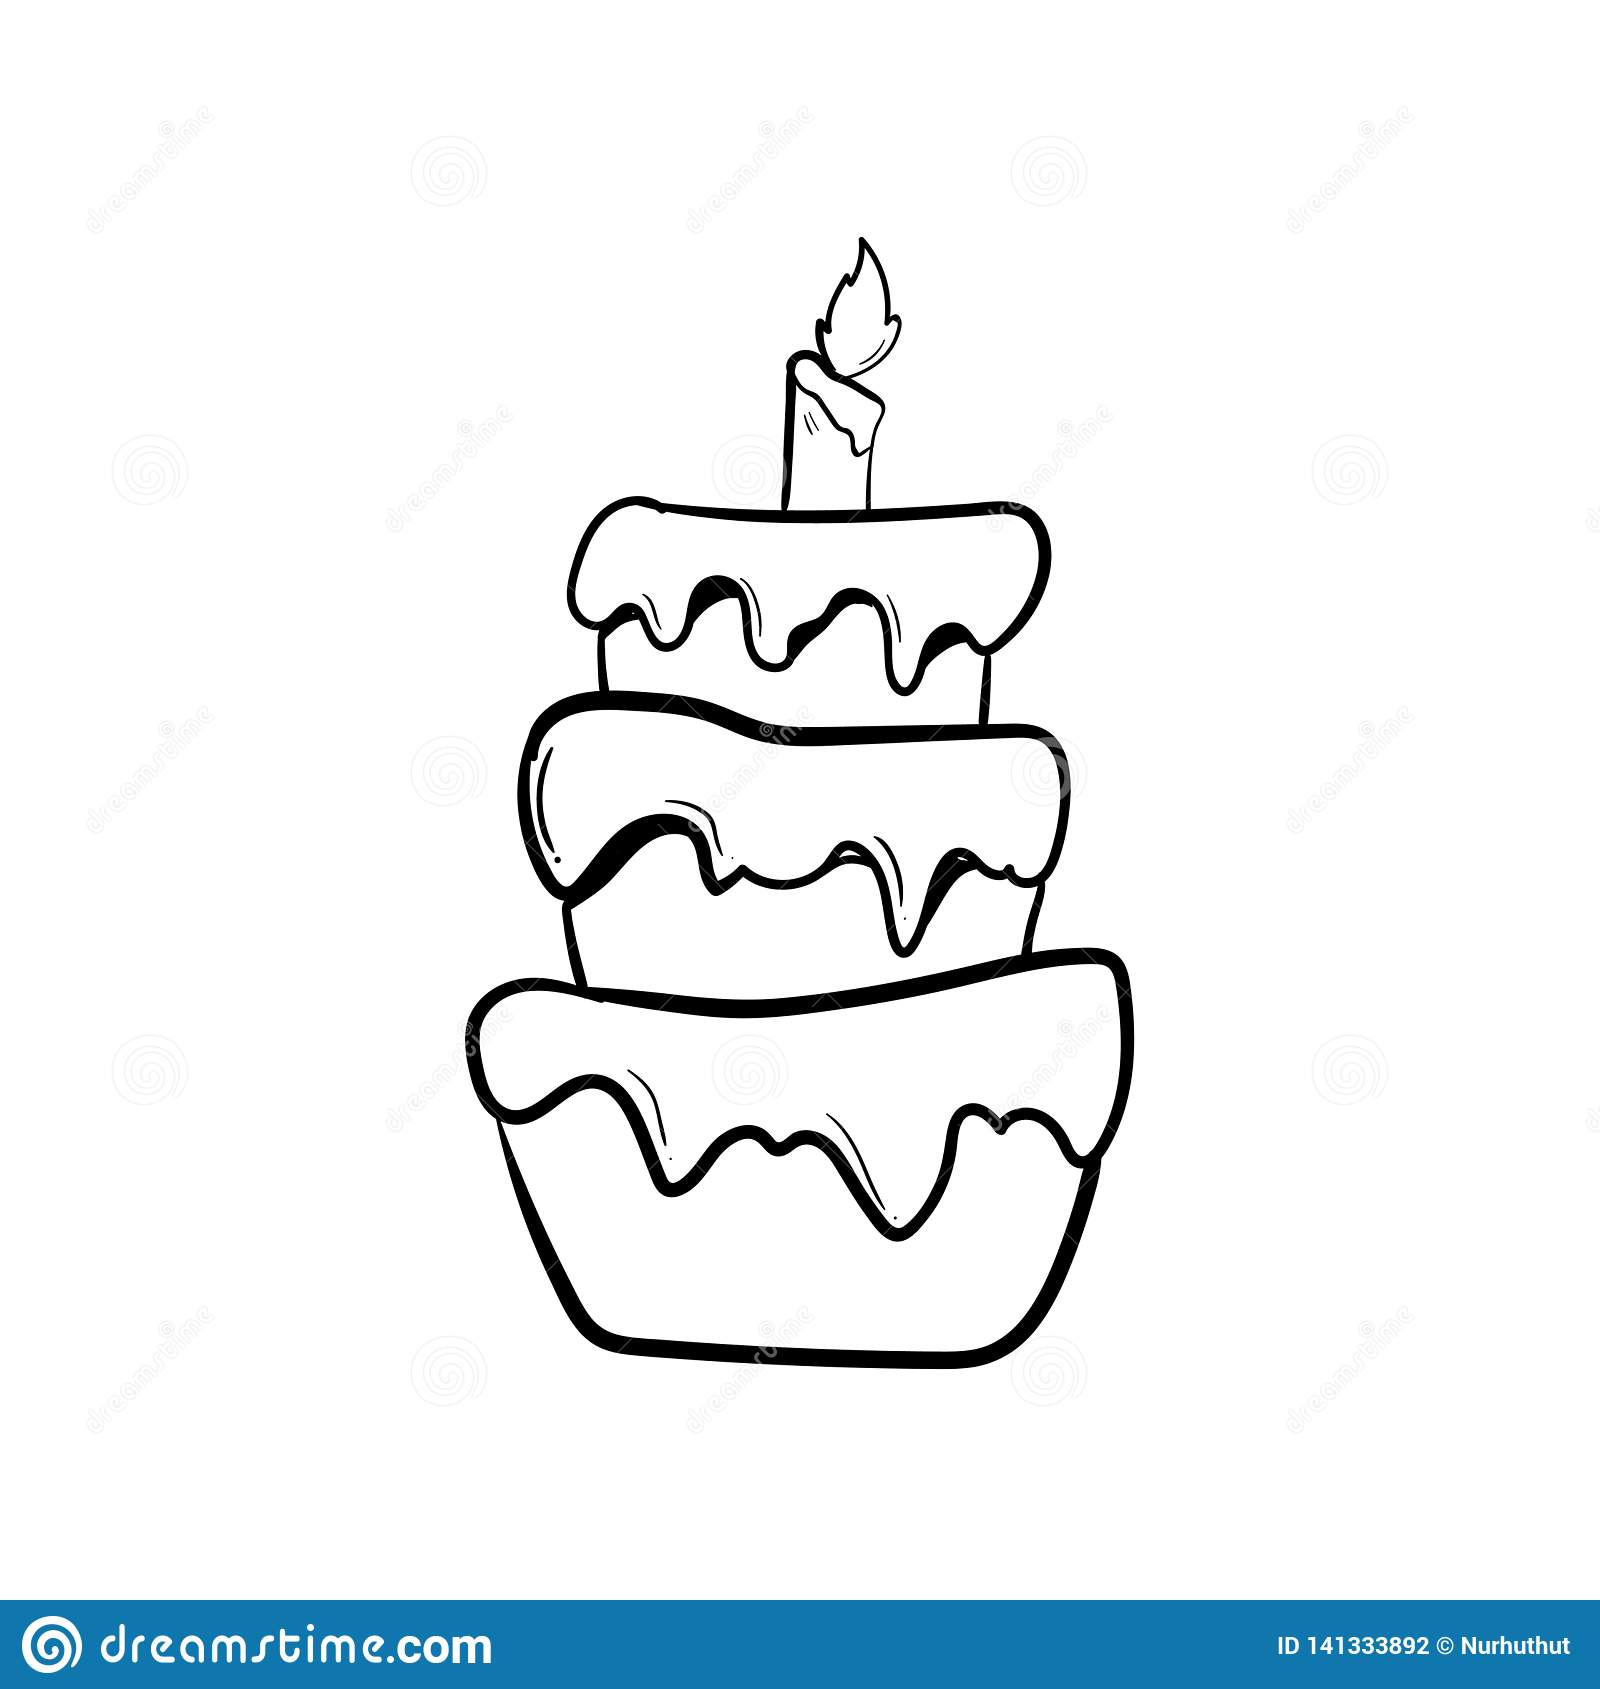 Surprising Birthday Cake With Outline Using Doodle Art Stock Illustration Funny Birthday Cards Online Inifofree Goldxyz